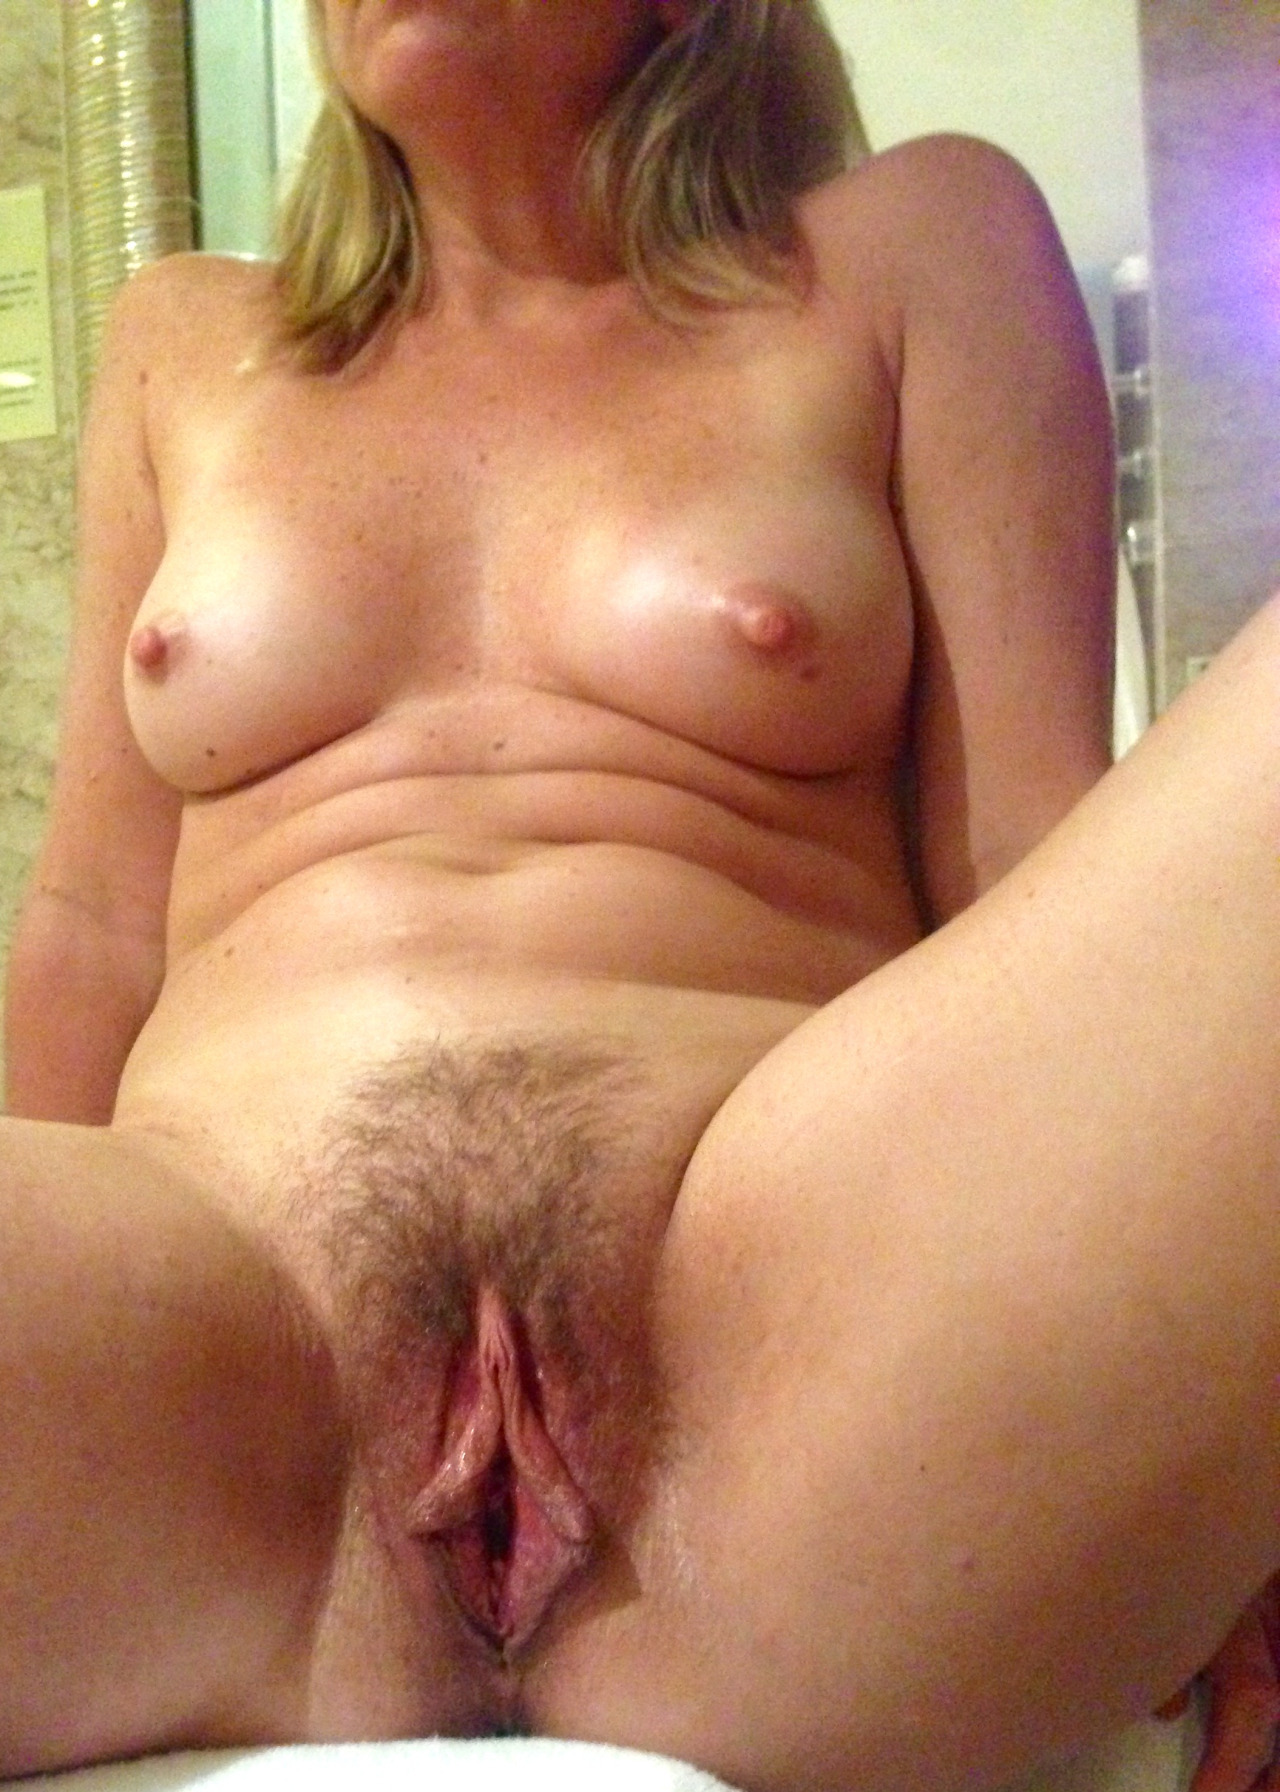 45 year old wife getting creampie from much younger man 4